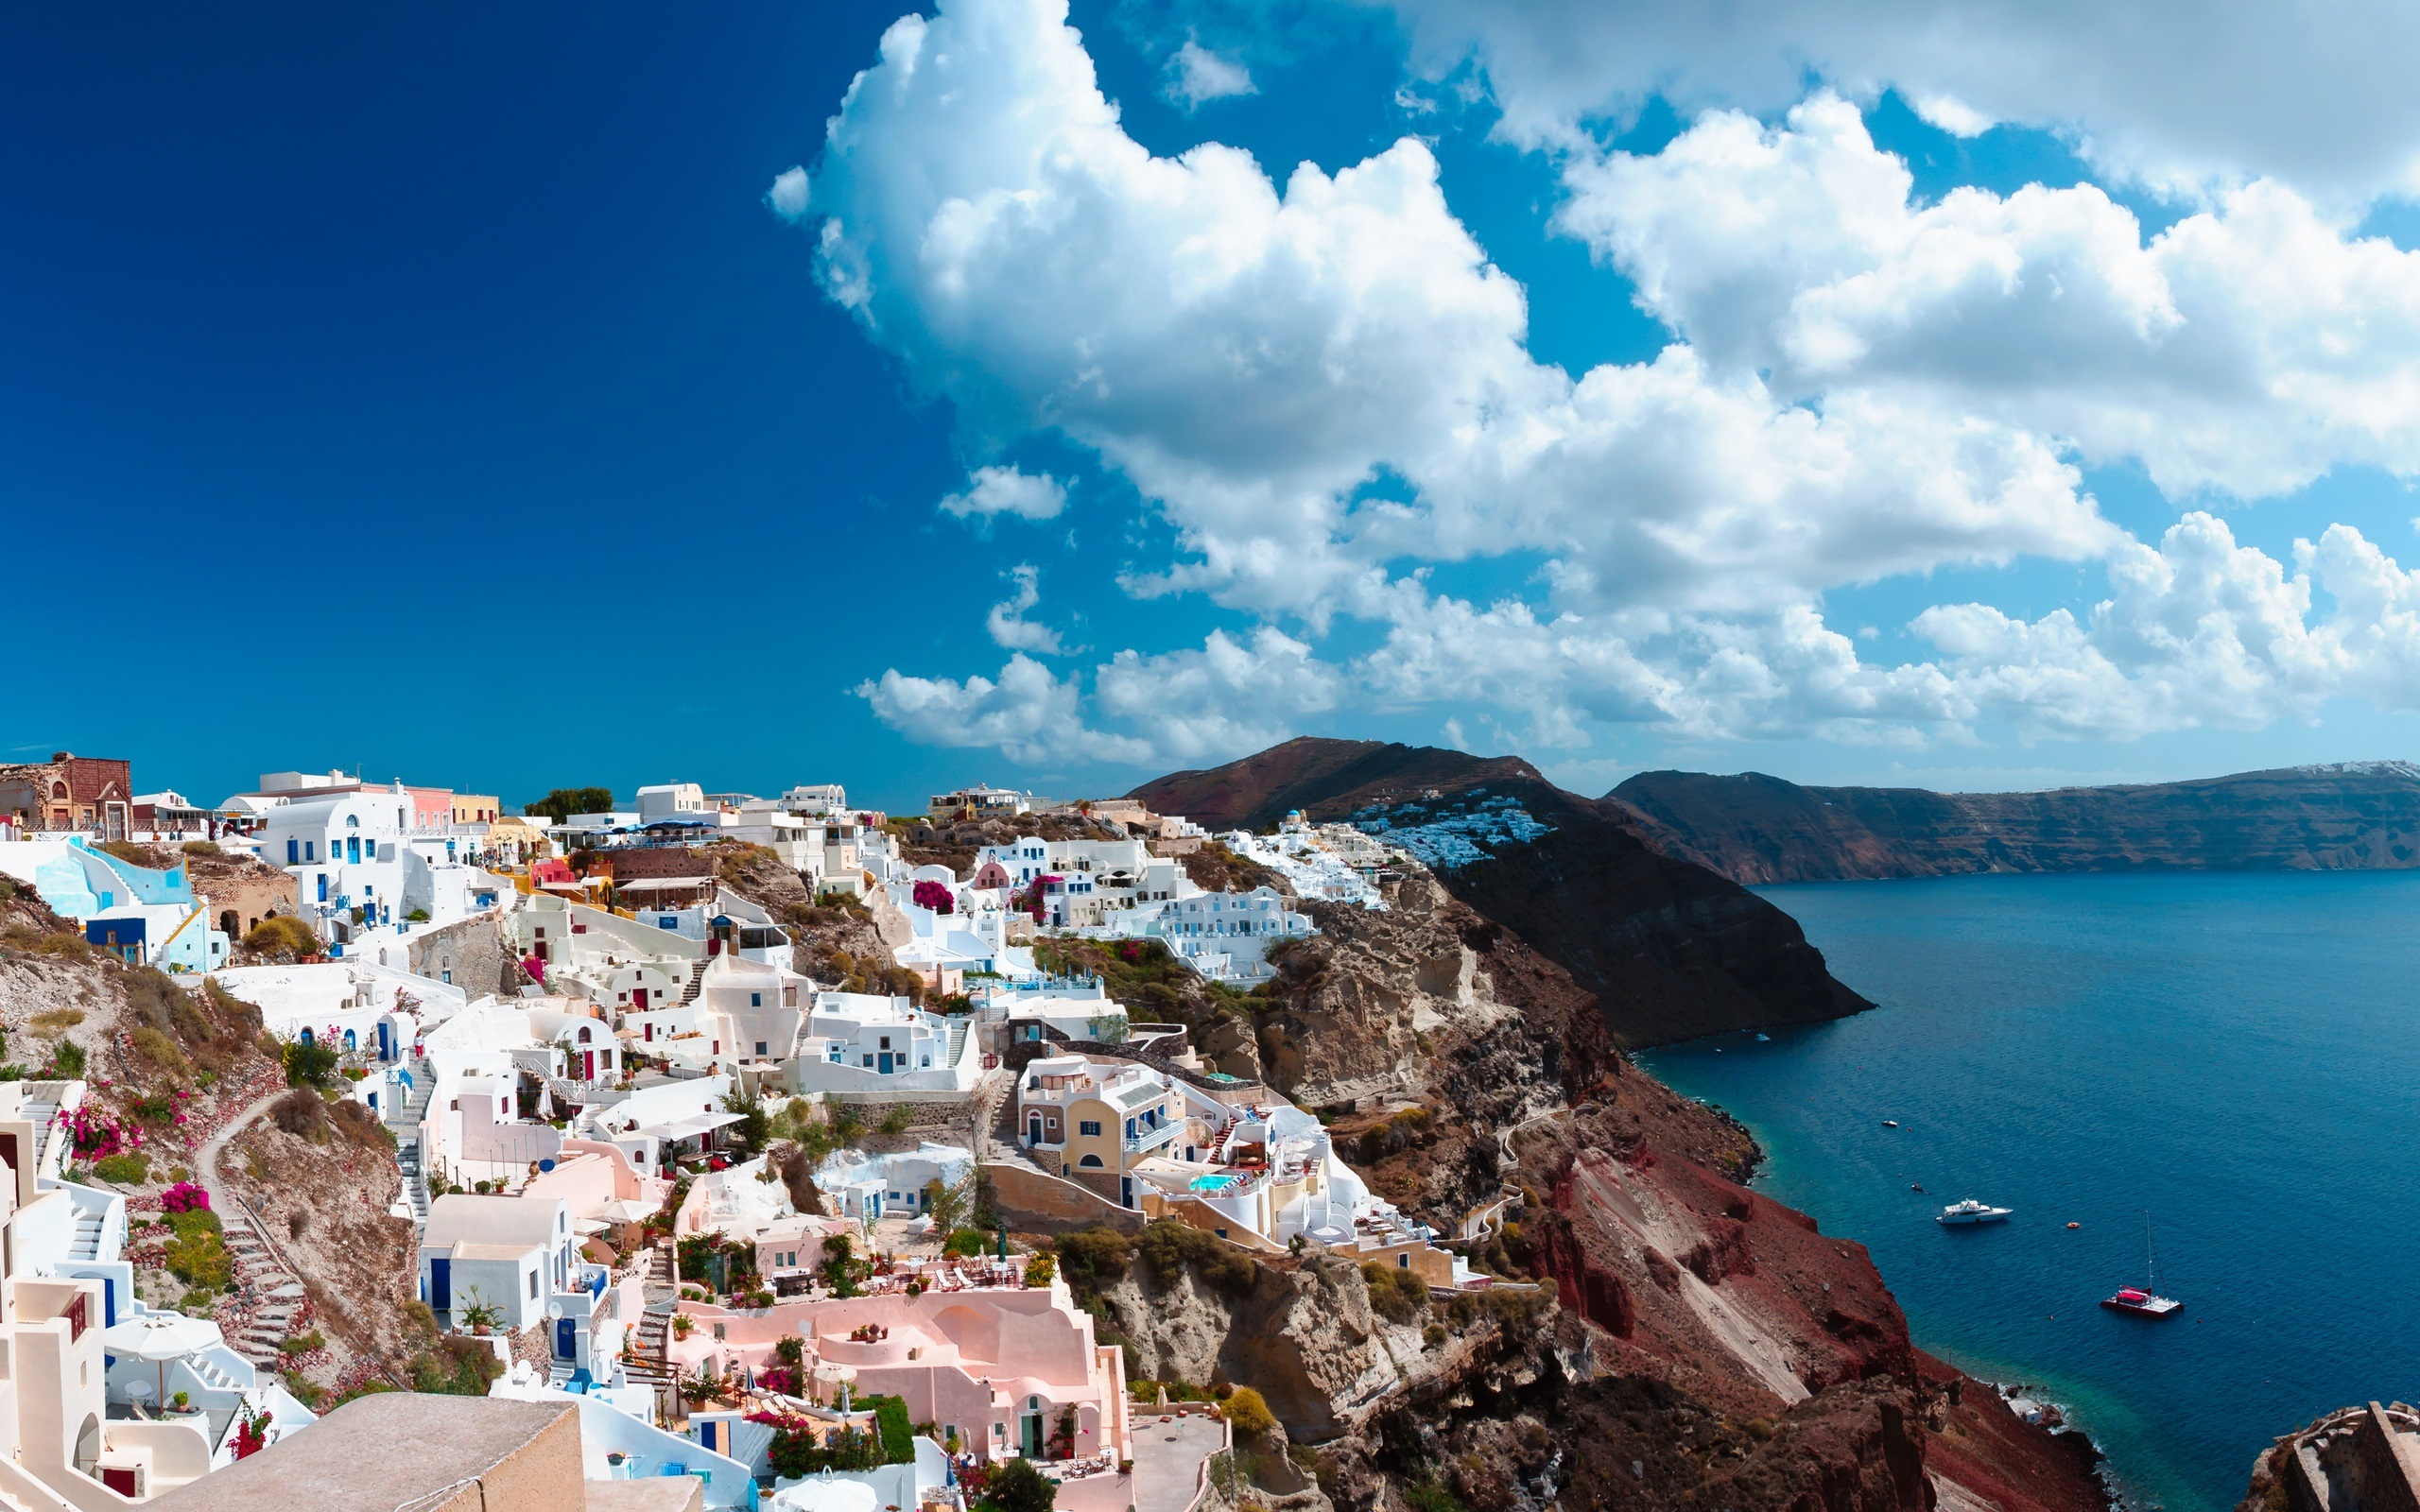 Wallpaper Santorini Greece island sea city houses 2560x1600 2560x1600